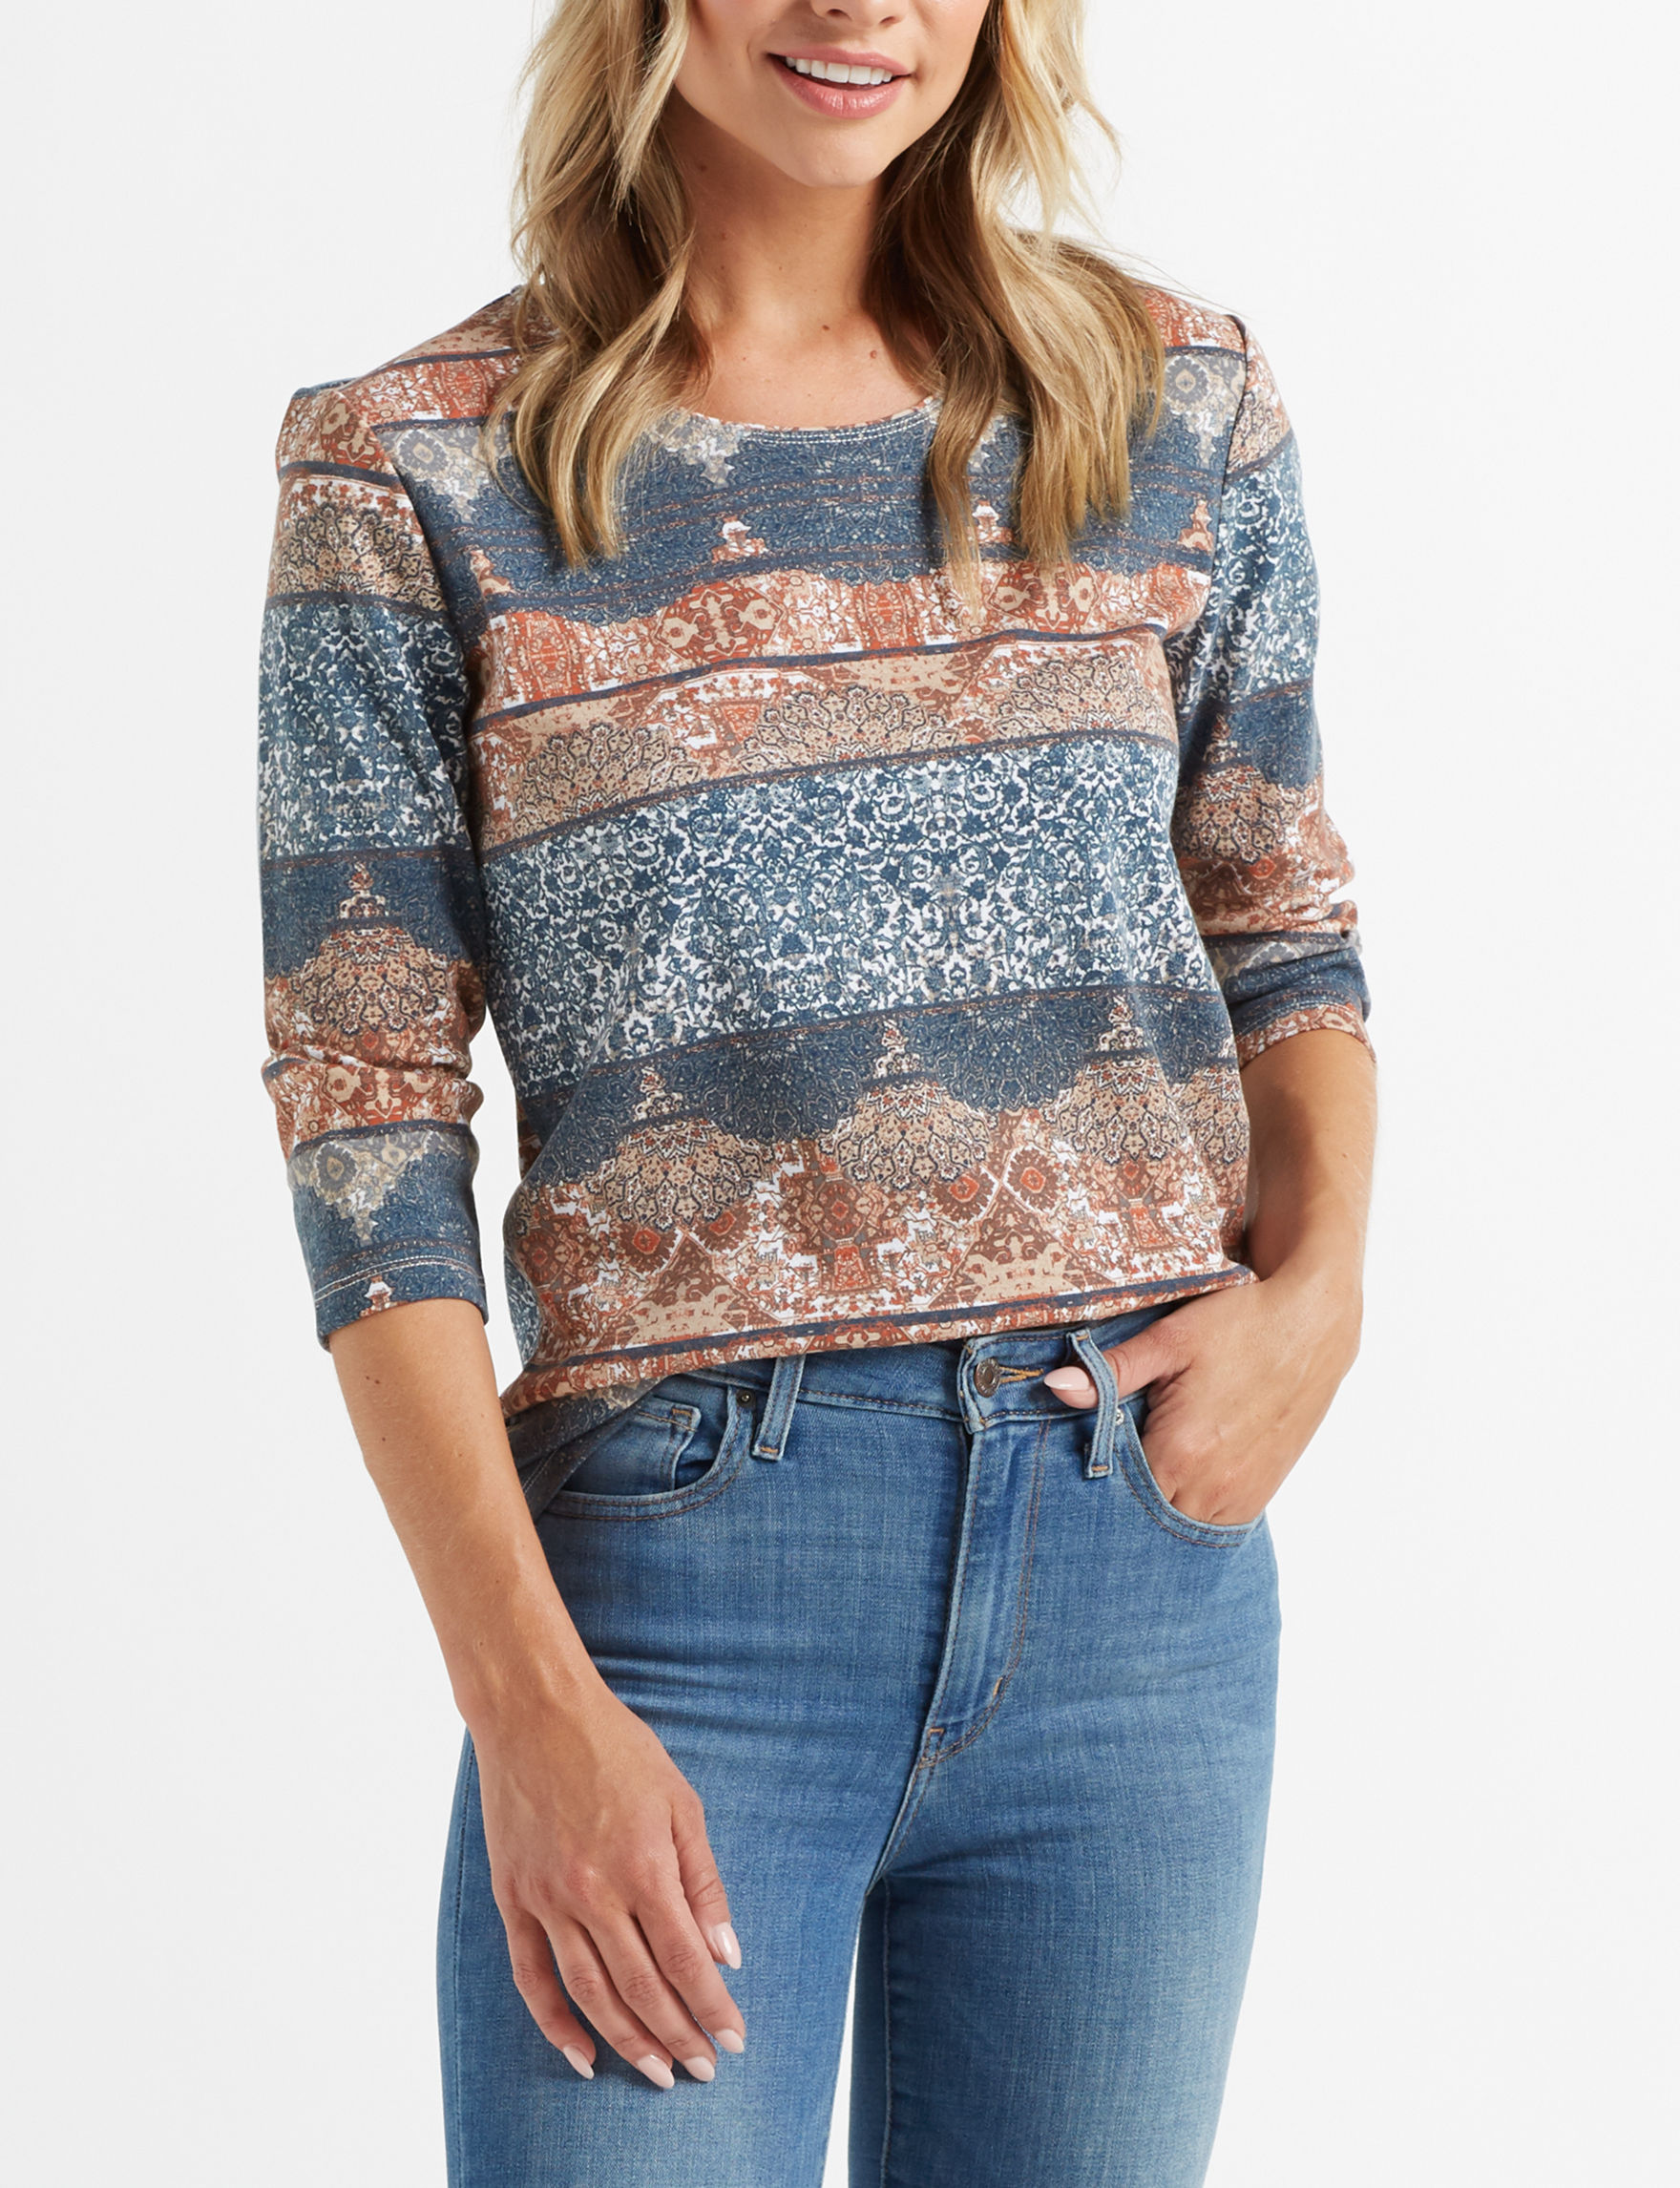 Rebecca Malone Blue / Multi Shirts & Blouses Tees & Tanks